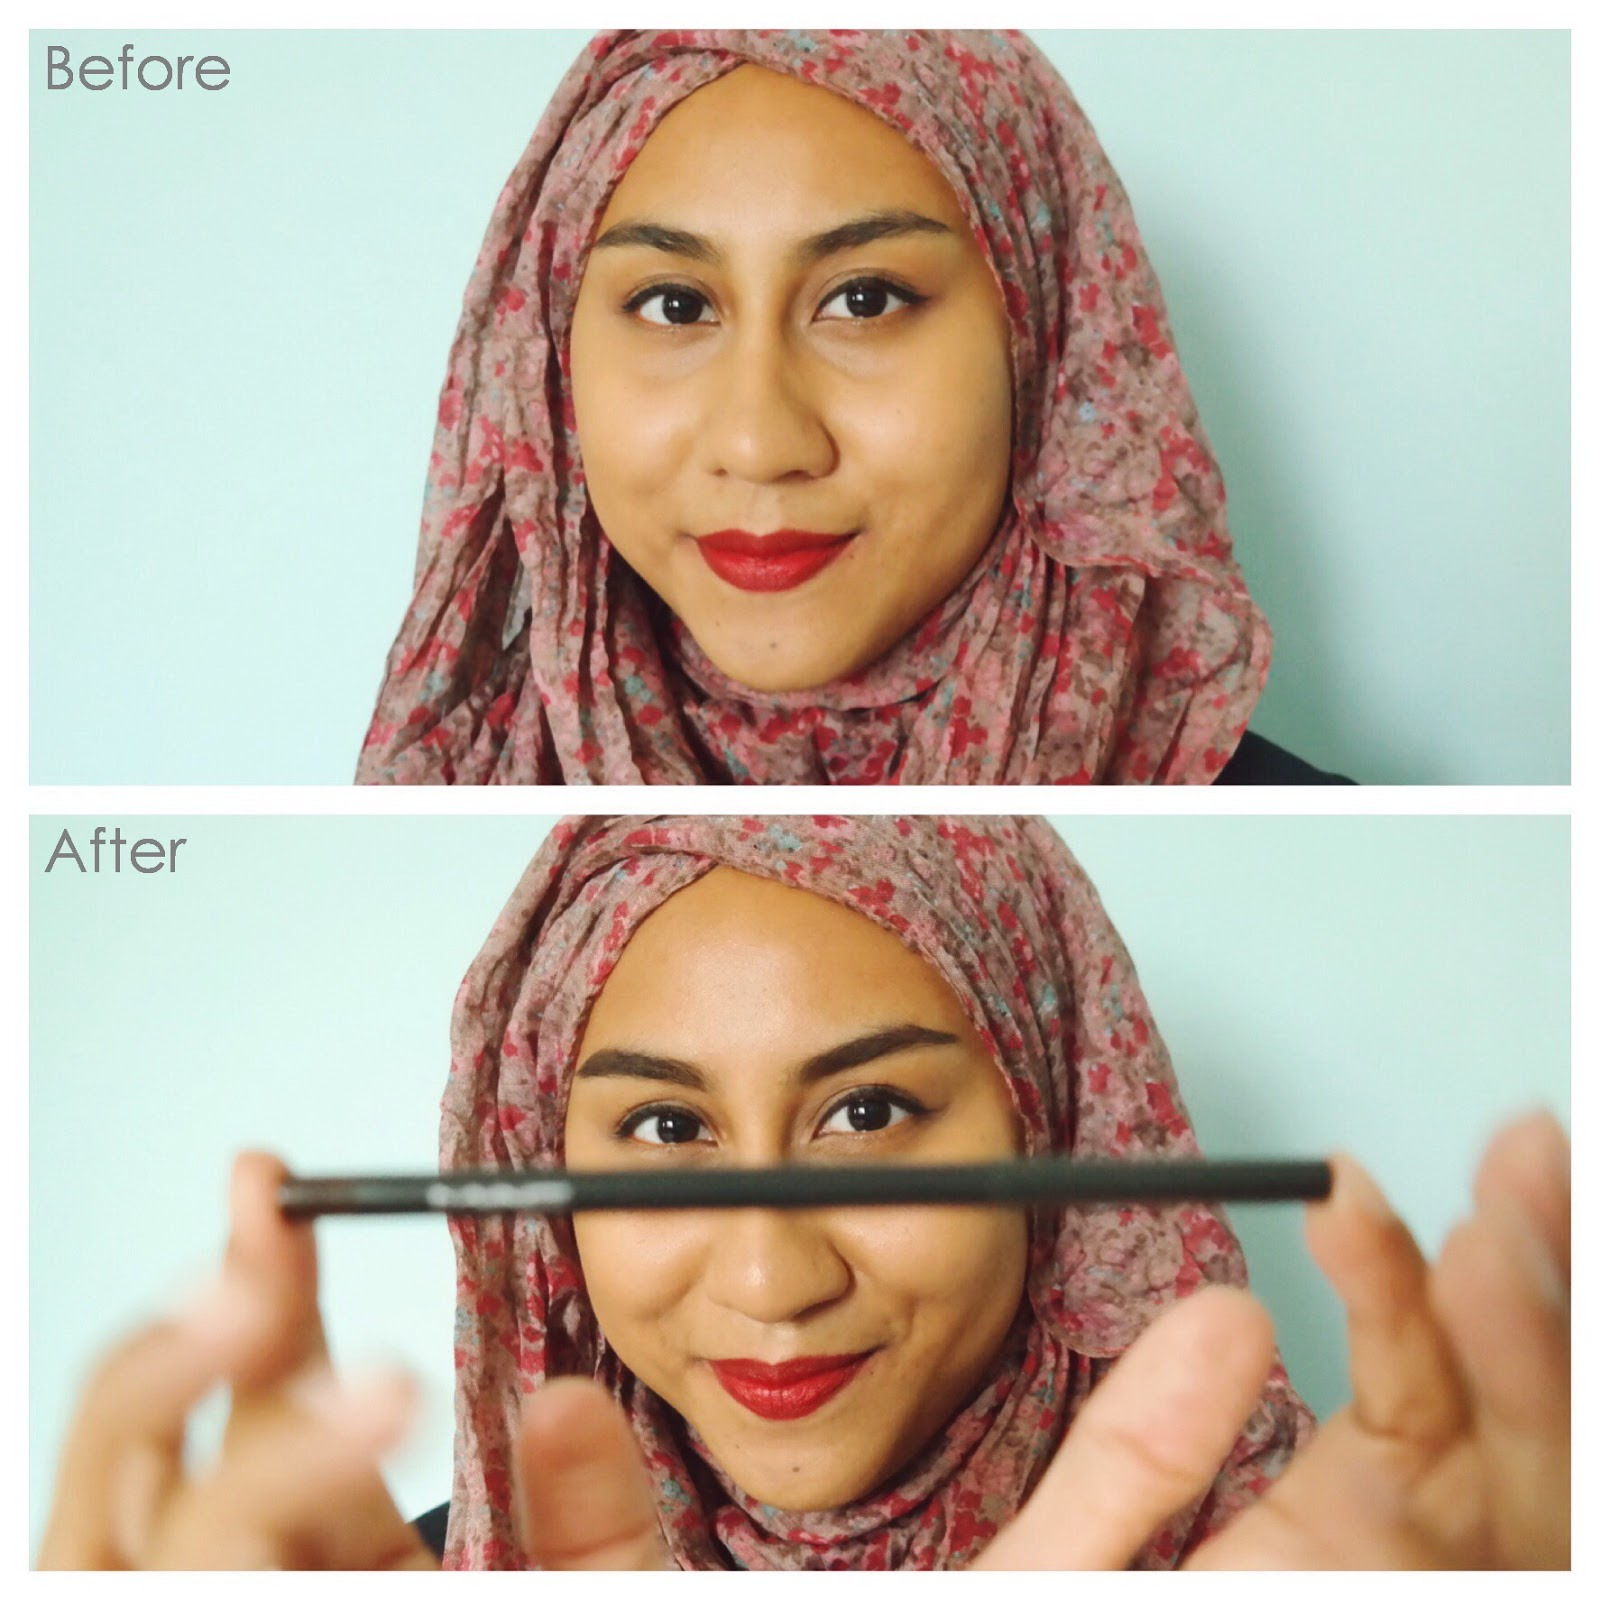 Mac Eyebrow Pencil In Spiked Affordorable